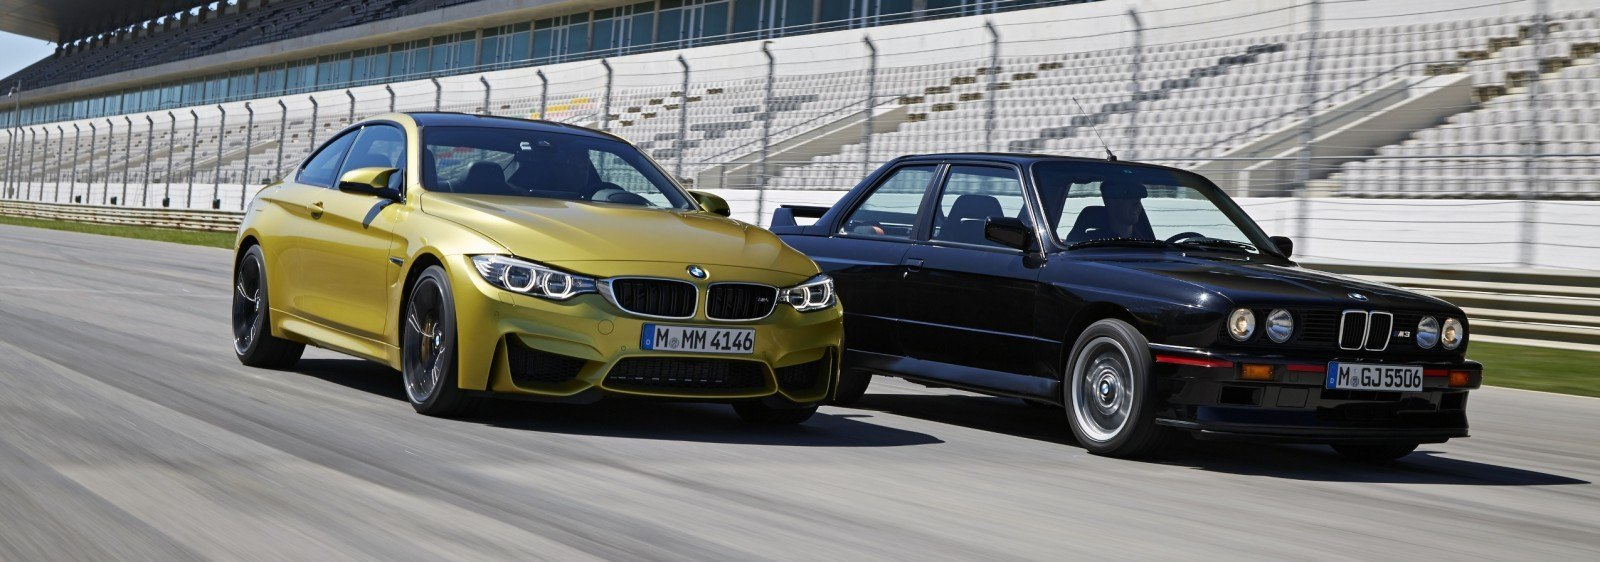 2015 BMW M3 and M4 Meet The Legacy in 52 New Photos With E30 Sport Evolution, E36 M3 Sedan, E46 and E90 21